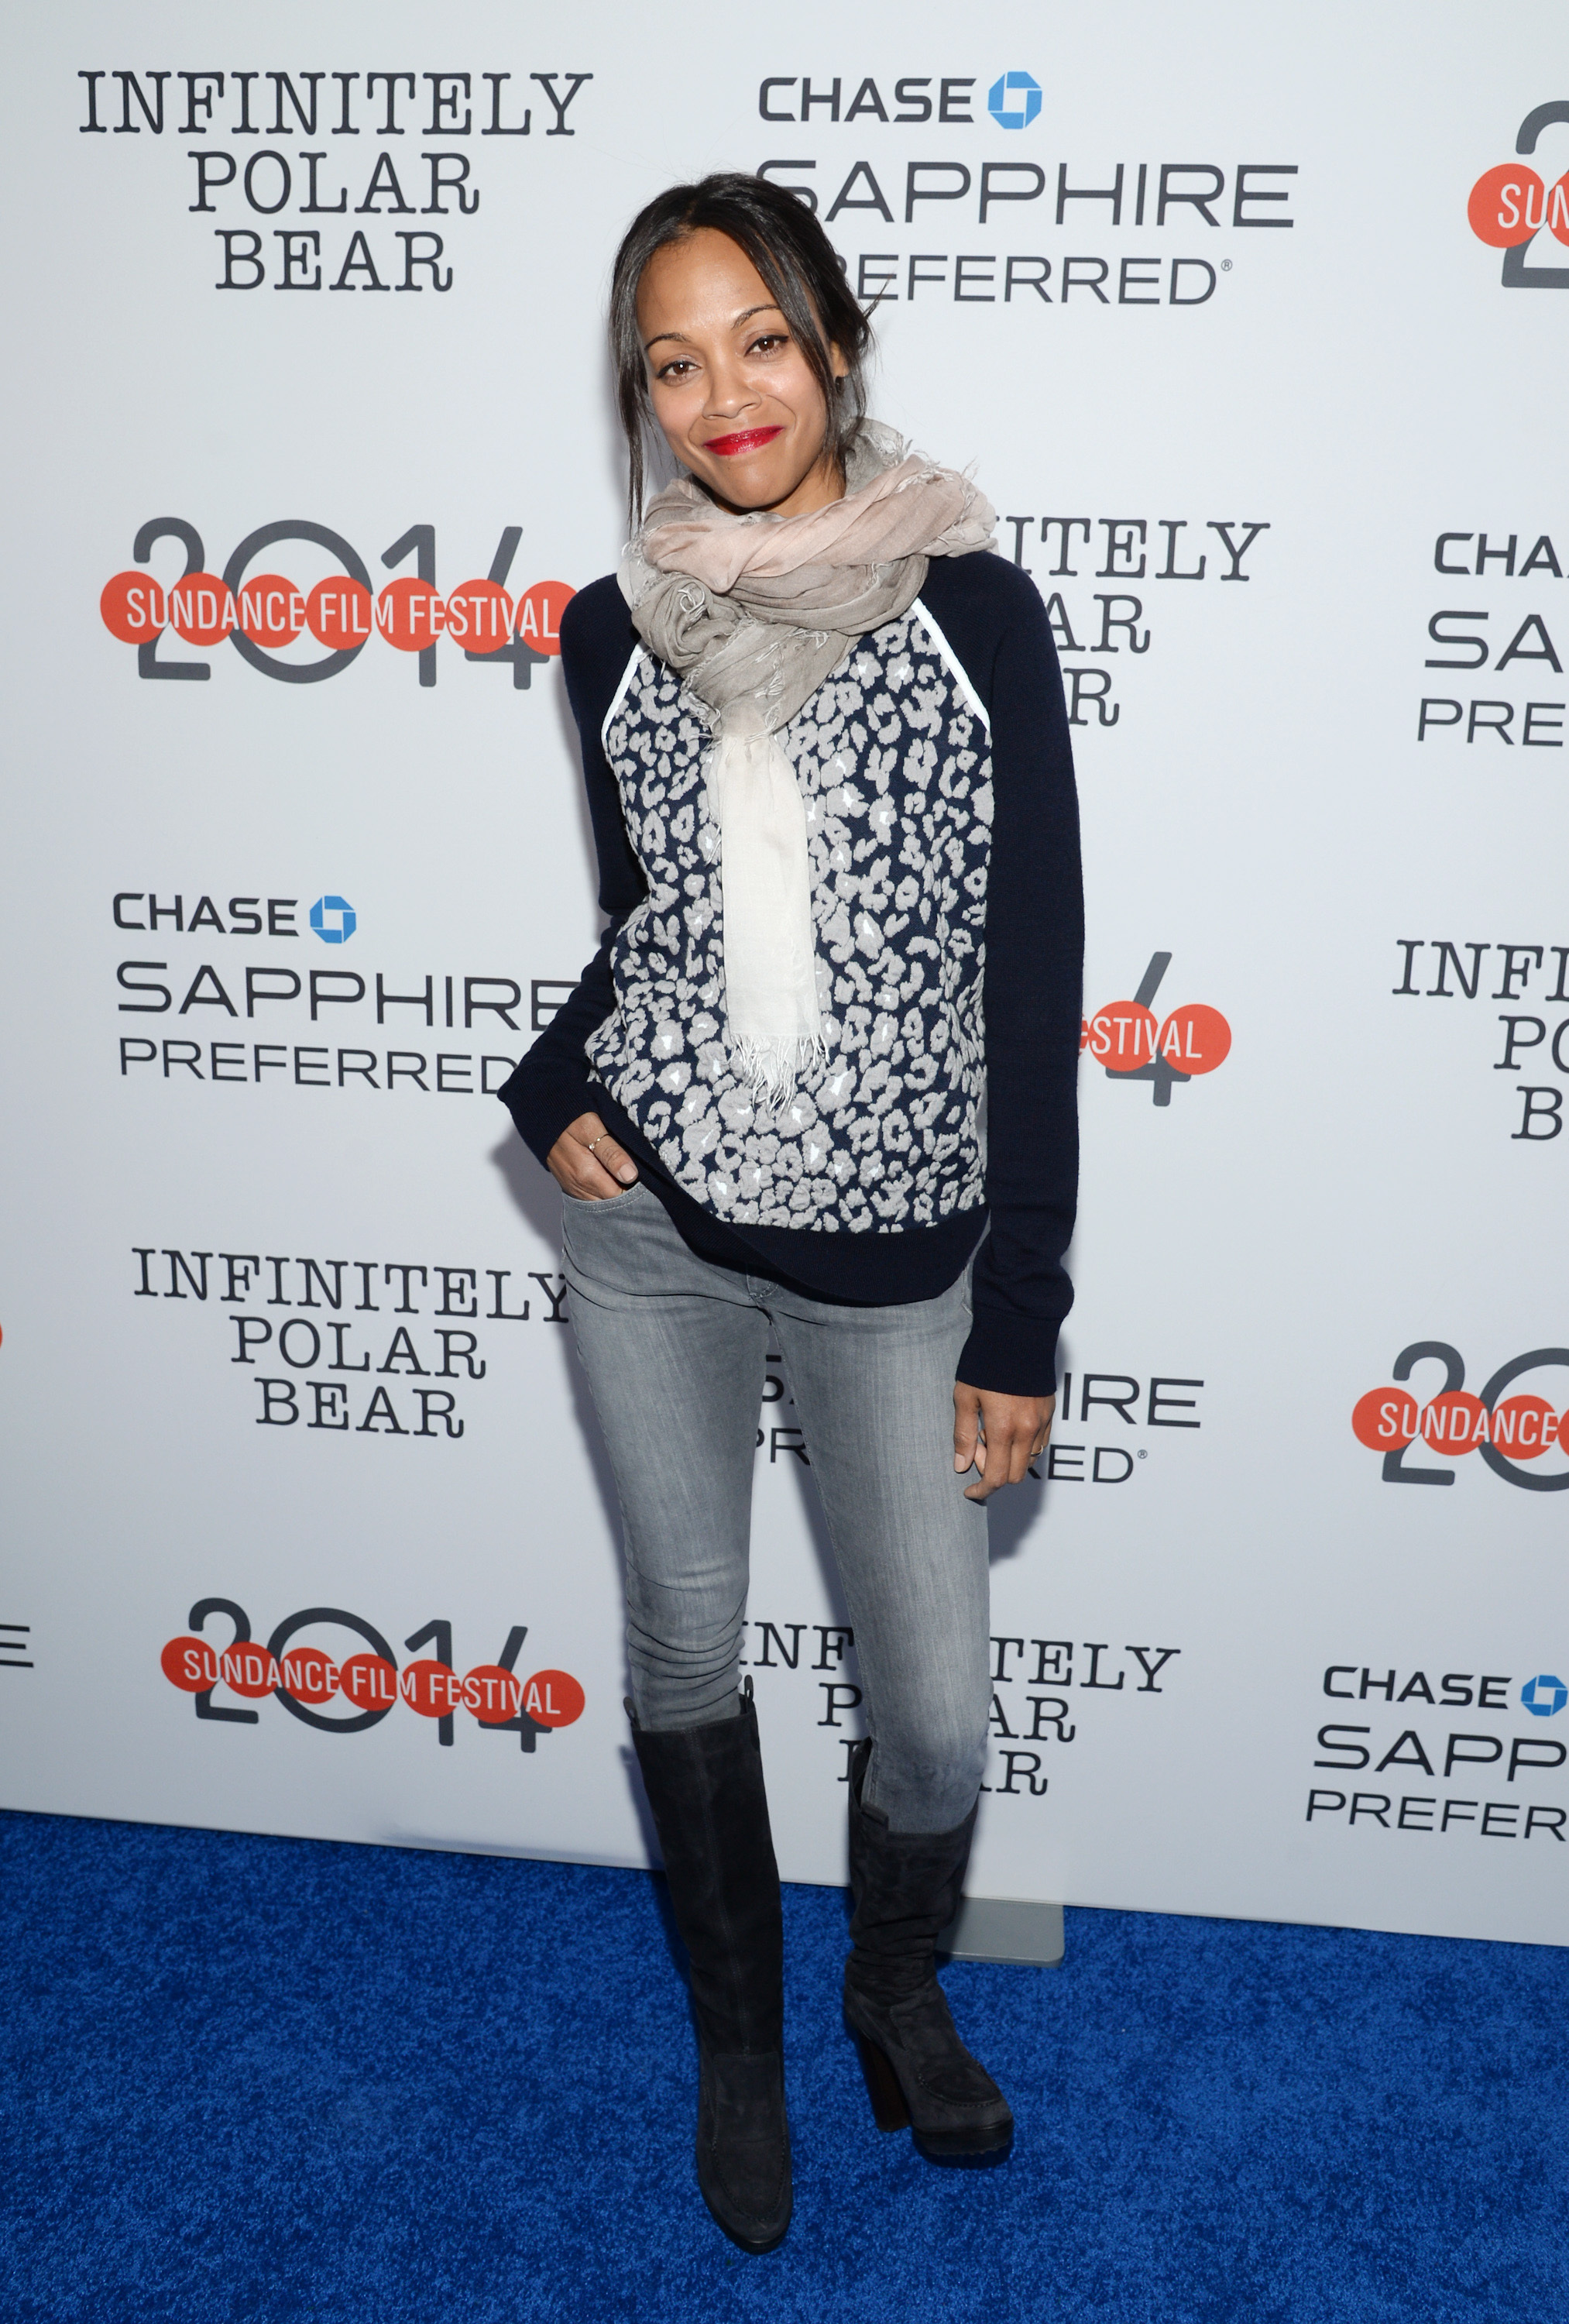 """Actress Zoe Saldana attends the """"Infinitely Polar Bear"""" premiere party hosted by Chase Sapphire Preferred during the Sundance Film Festival on Saturday, Jan. 18, 2014 in Park City, Utah. (Photo by Evan Agostini/Invision for Chase Sapphire Preferred/AP Images)"""